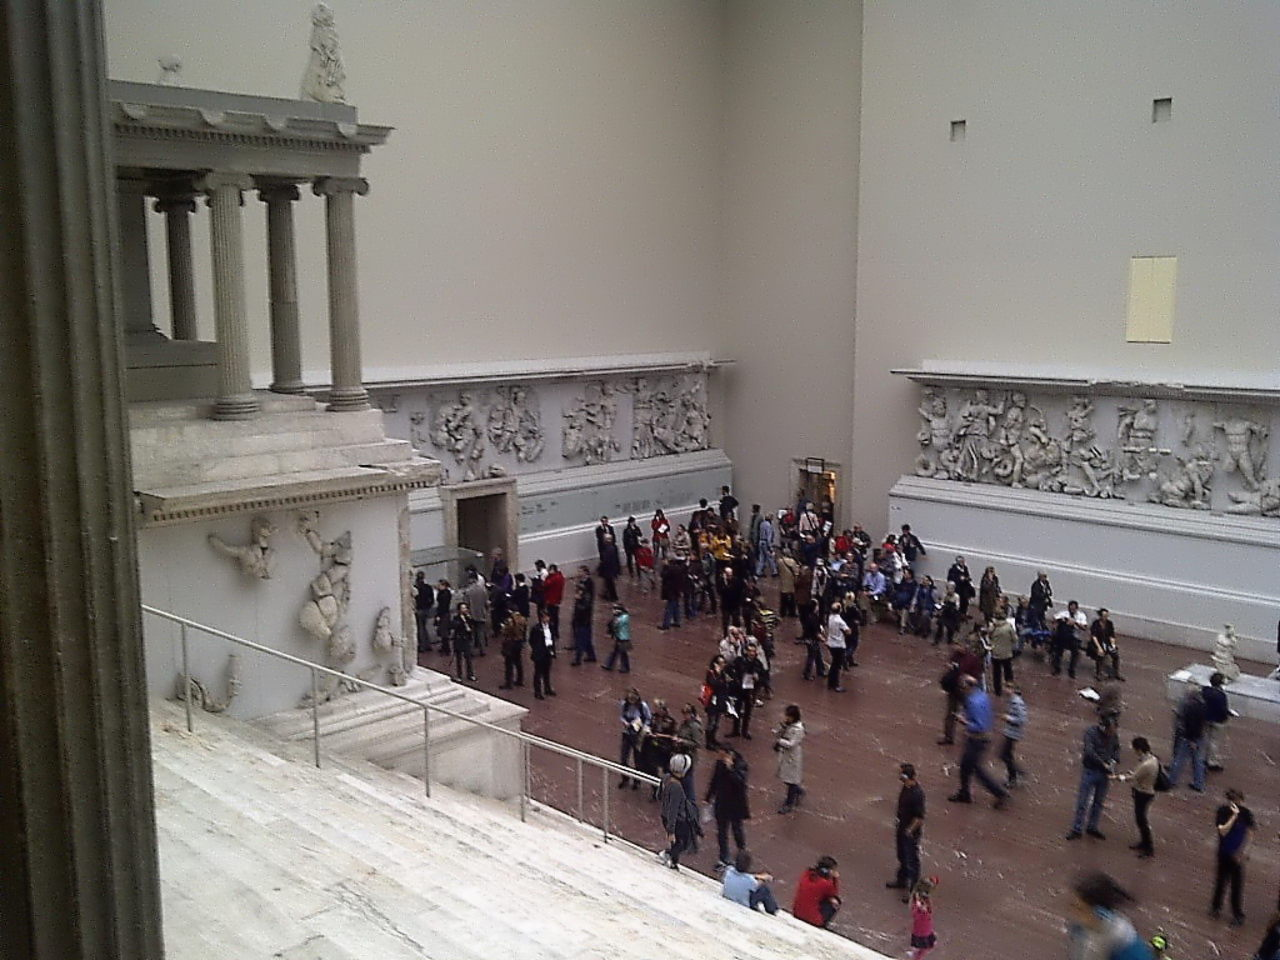 Pergamon Altar, view from stairs